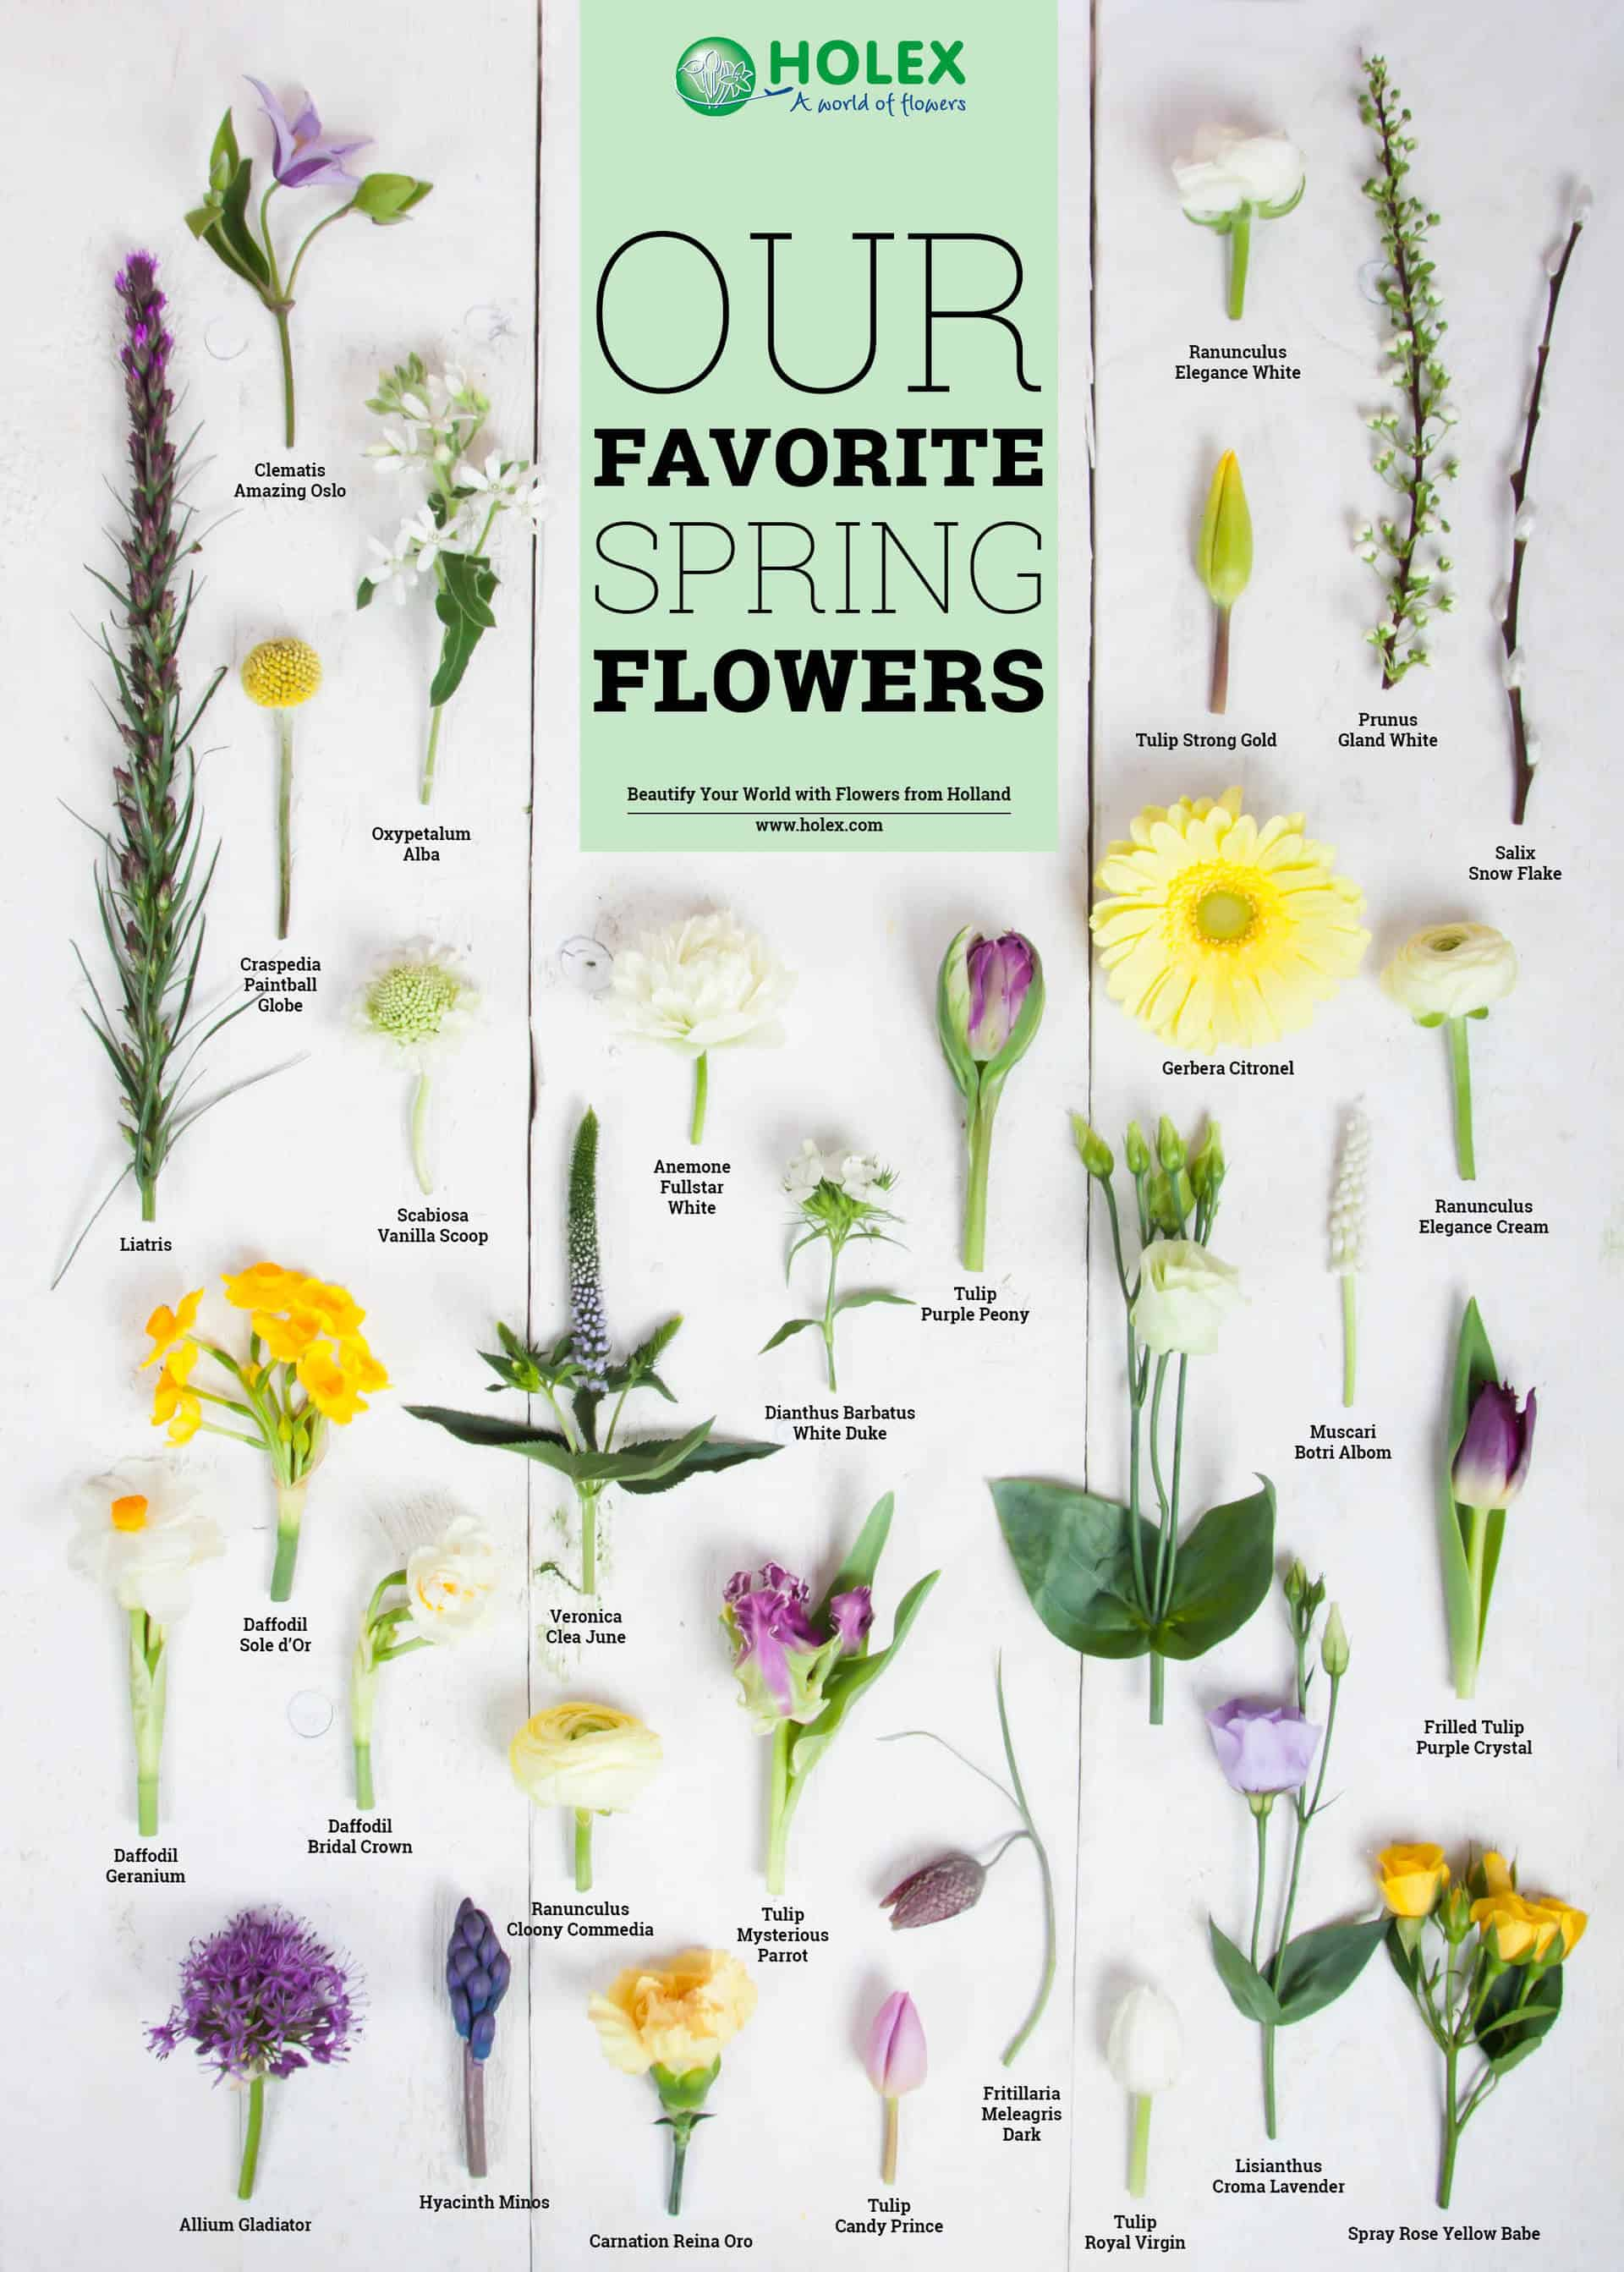 Favorite Spring Flowers 2018 | Holex Flower